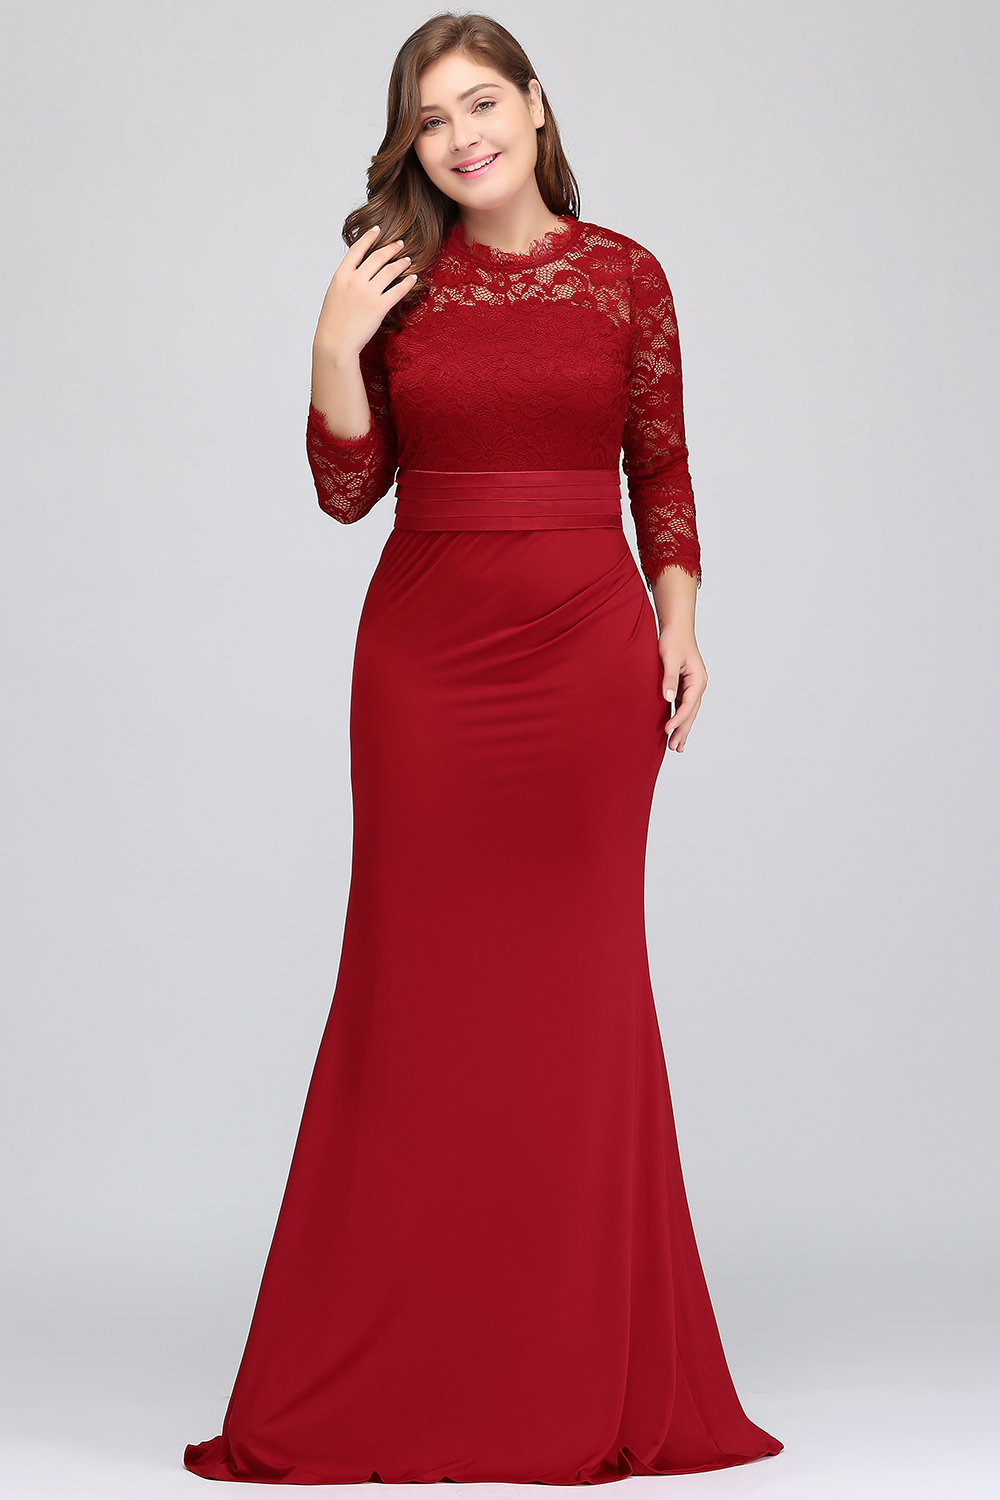 ae572042d7ccd US $27.46 42% OFF|robe de soiree longue Plus Size Evening Dresses 2019  Cheap Red Royal Blue Long Mermaid Evening Party Gown Dress Vestido De  Festa-in ...